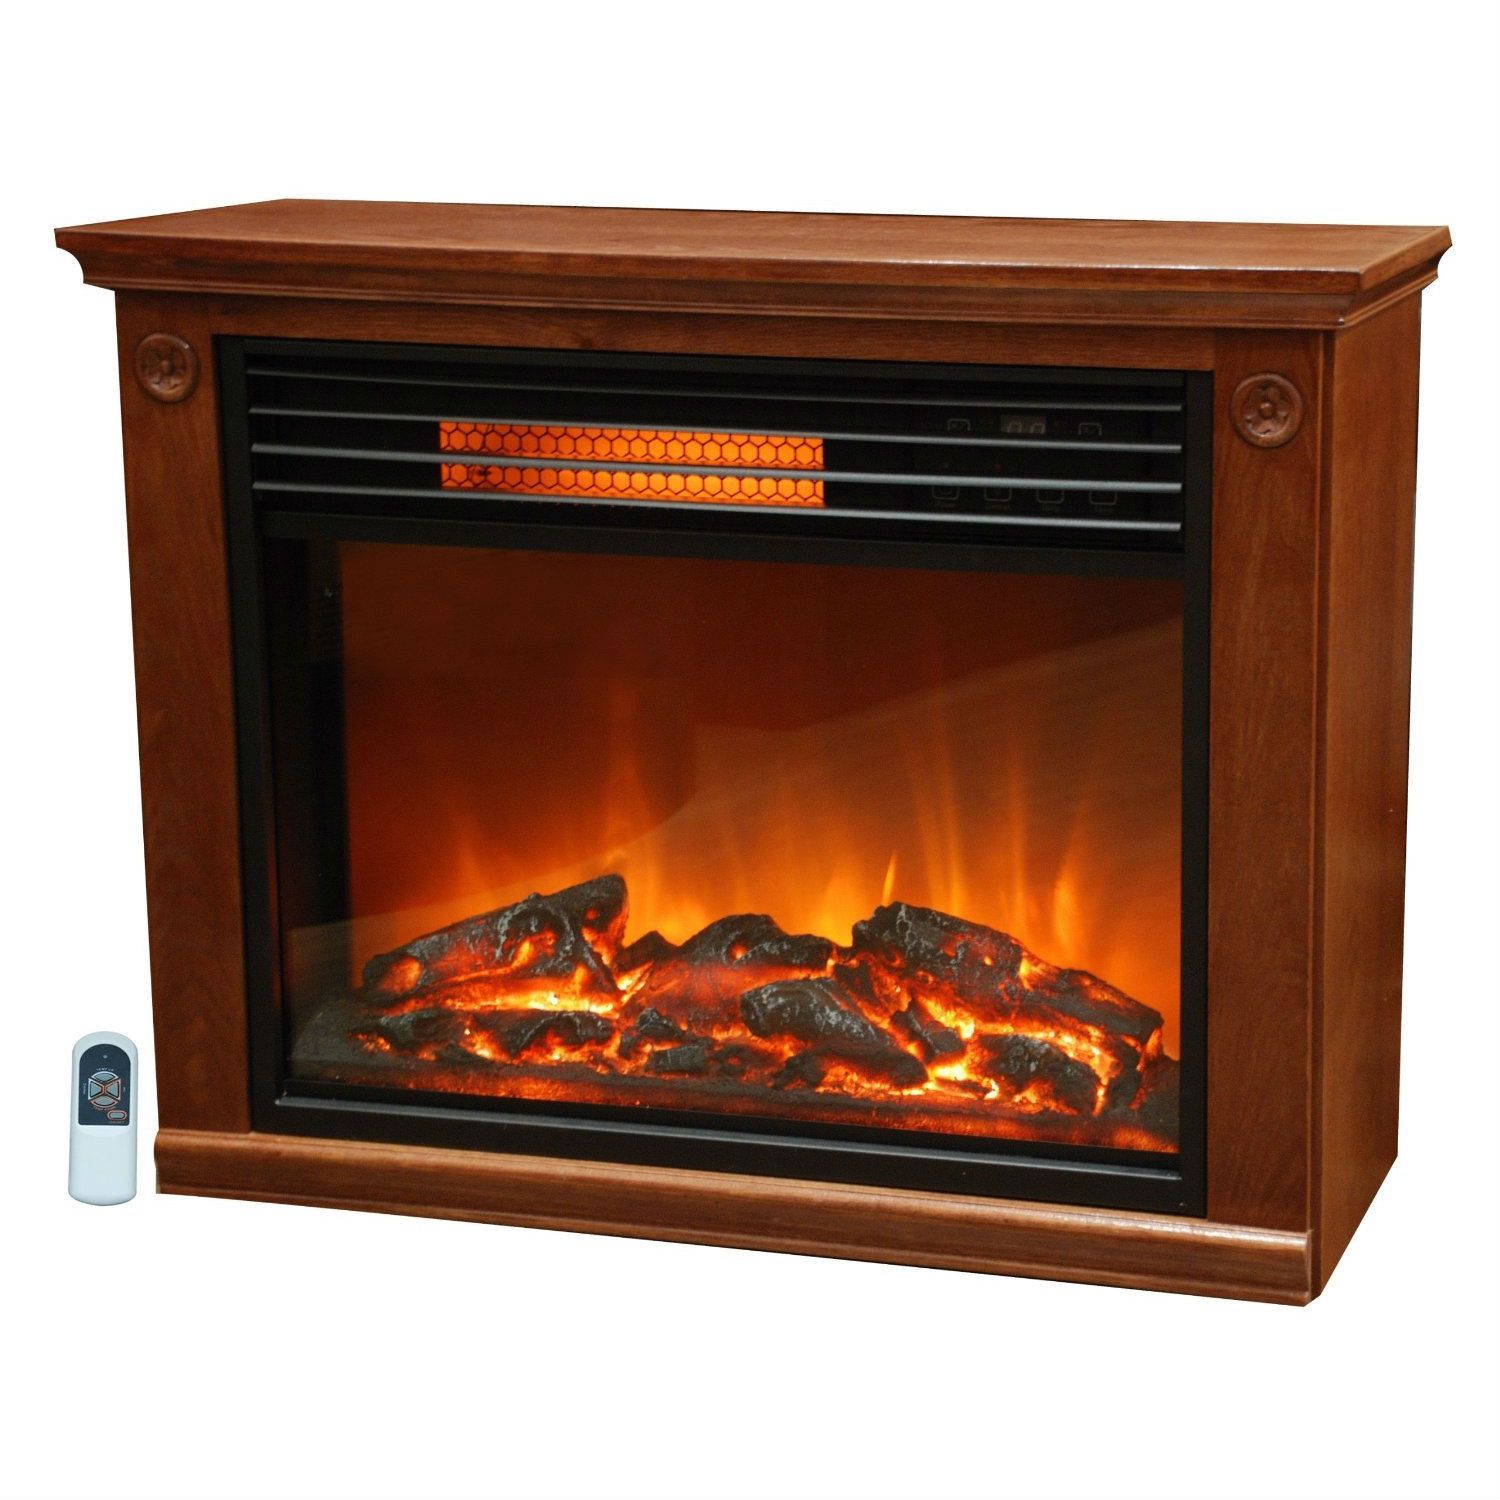 Elektro Kaminofen Amazon Infrared Electric Fireplace Space Heater 1500 Watt Medium Oak